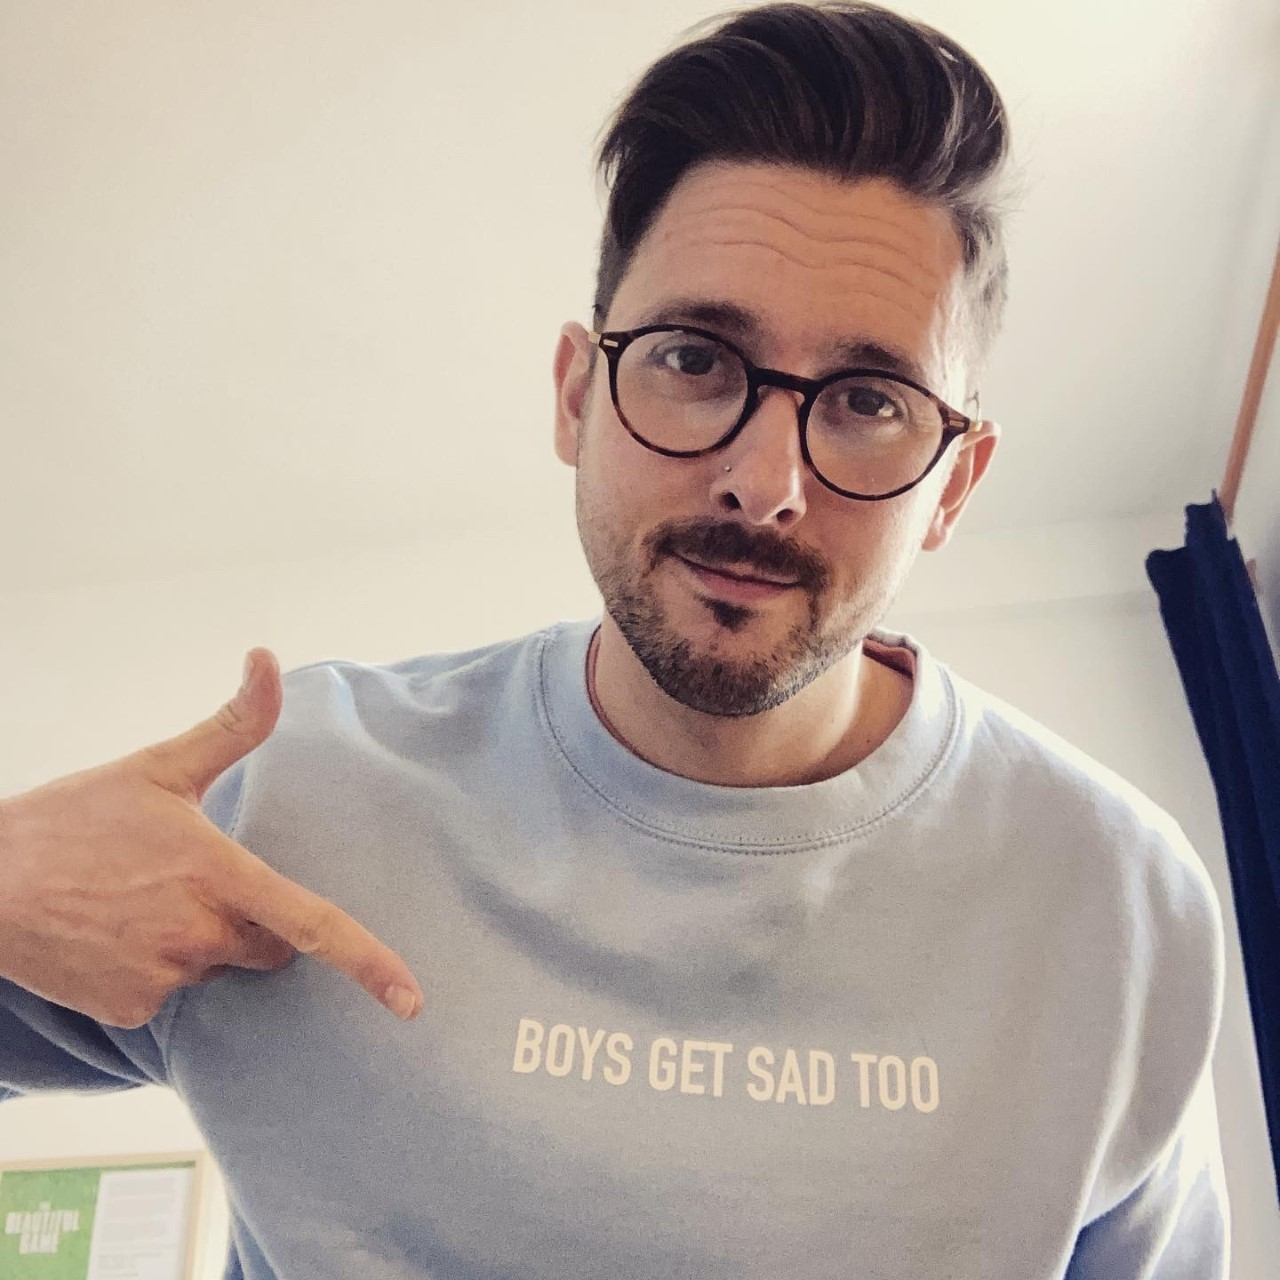 Charlie, a MindOur Volunteer, wearing a T shirt with the slogan Boys Get Sad Too